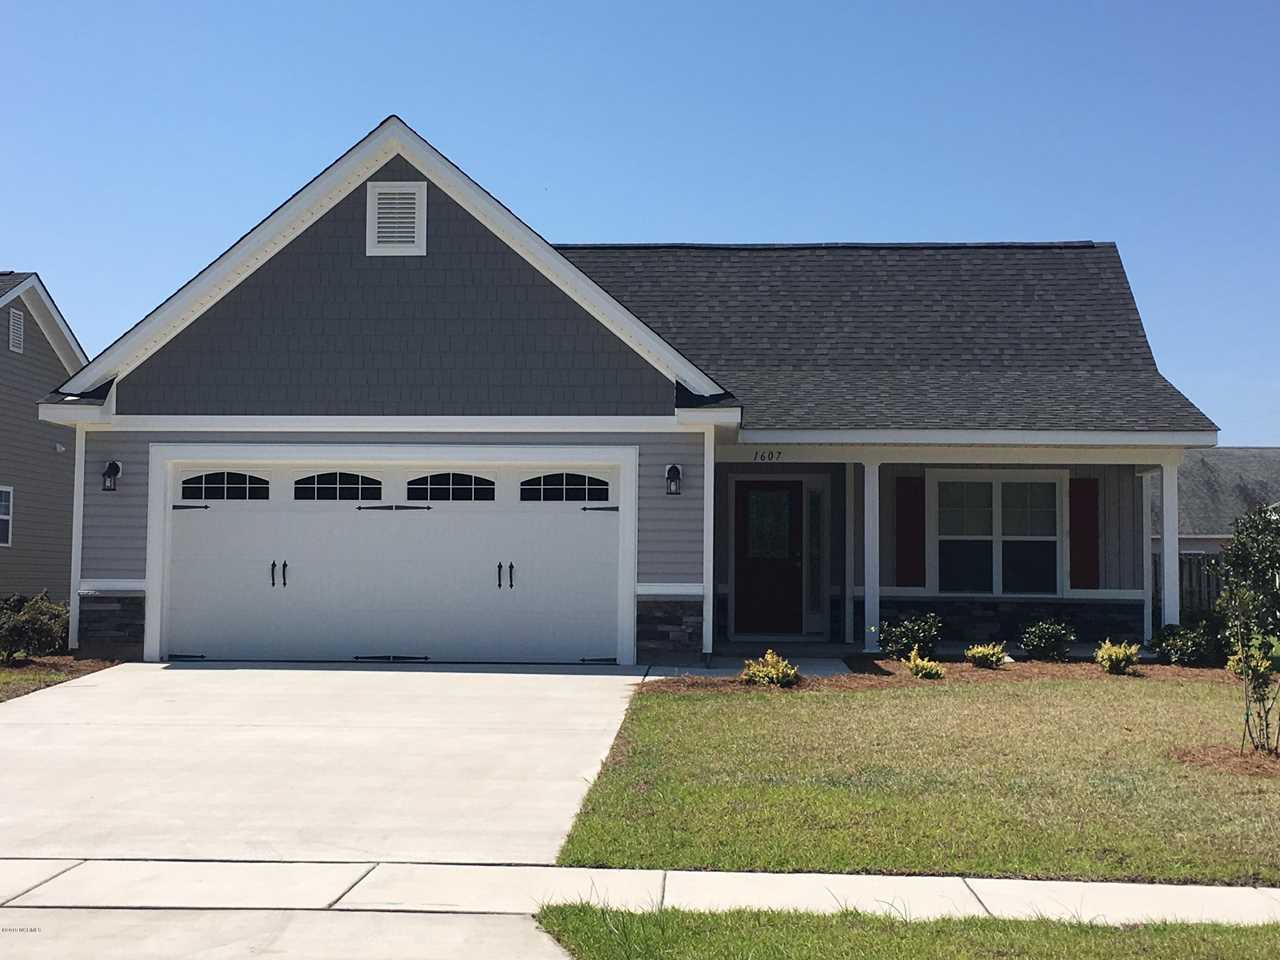 Home For Sale At 1607 Pine Harbor Way, Leland NC in Windsor Park Photo 1